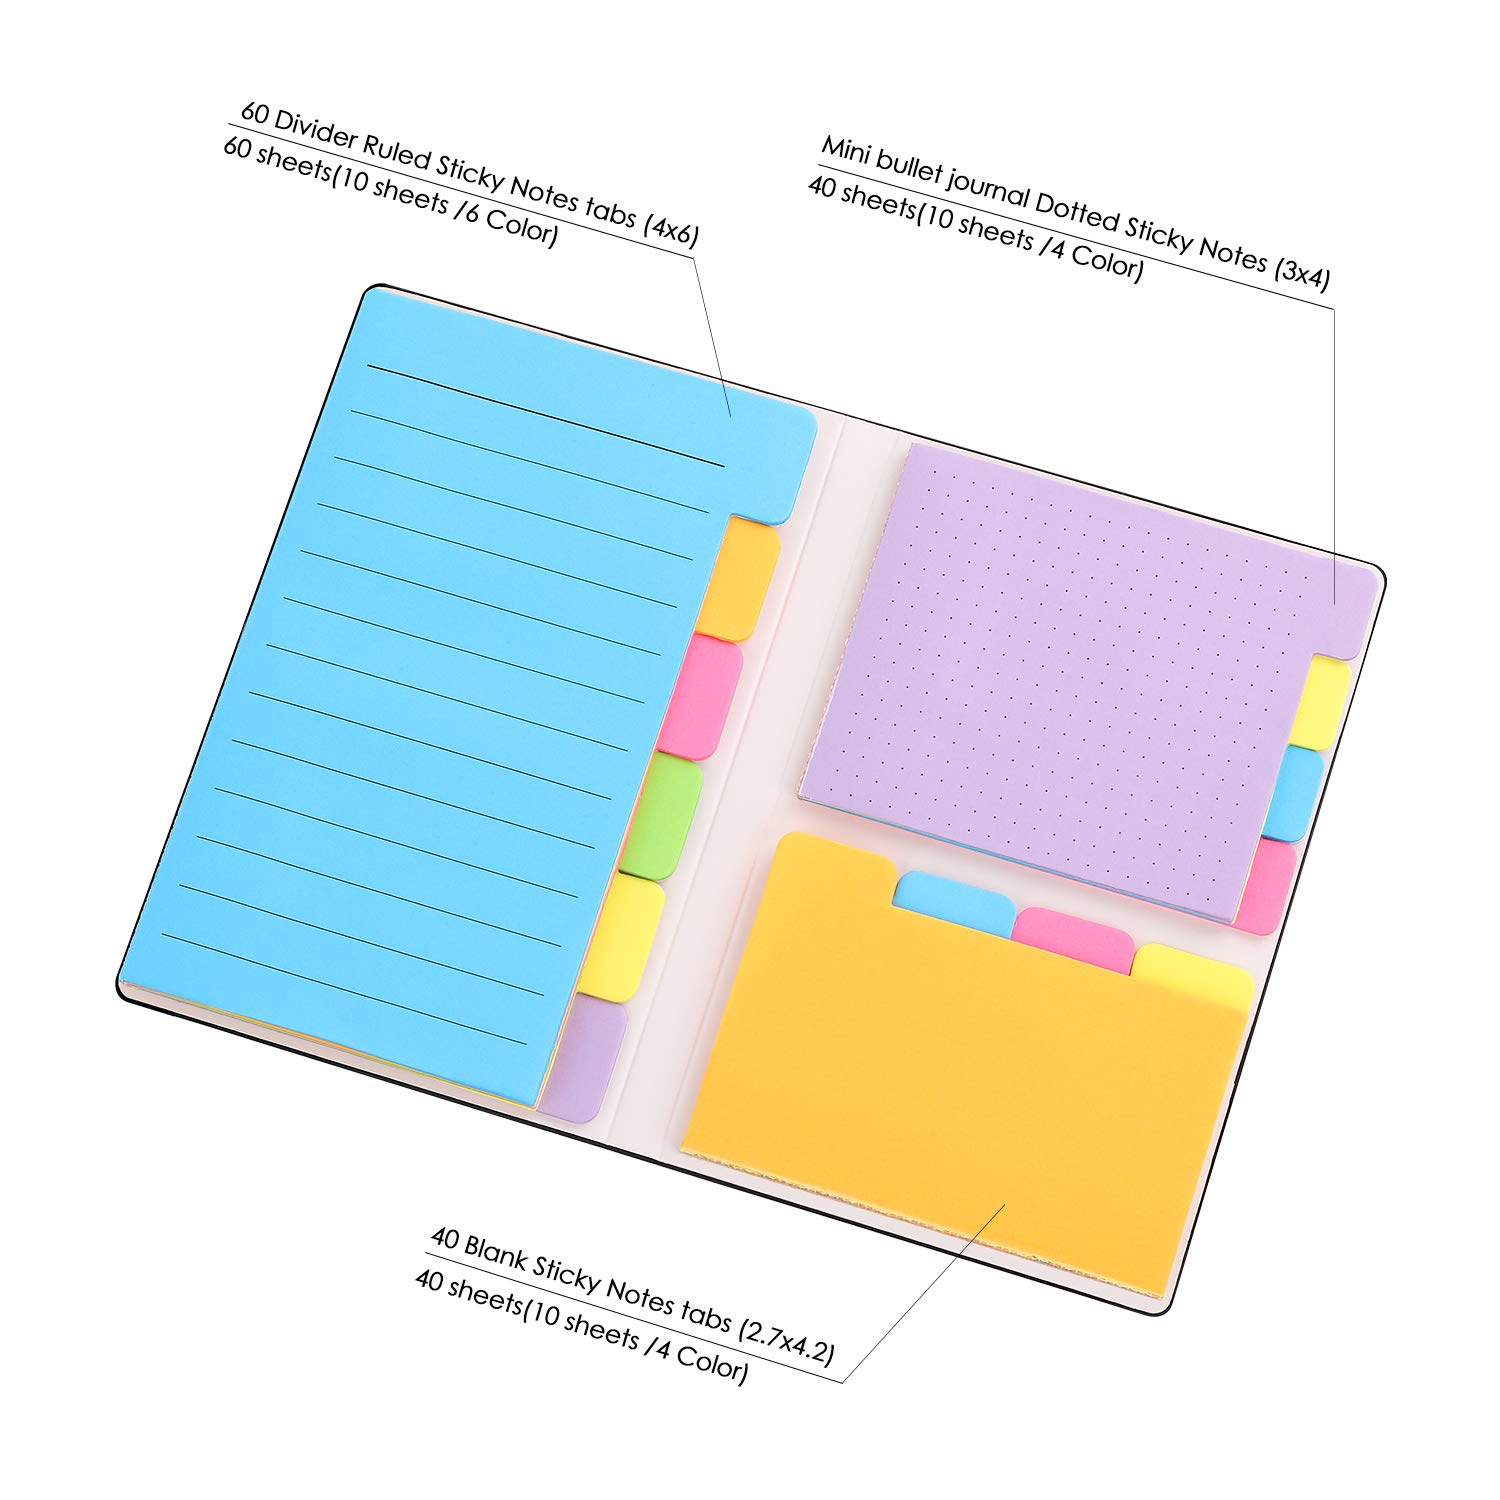 Amazon.com: Sticky Notes with Bookmark Index, 140 Pages Divider ...